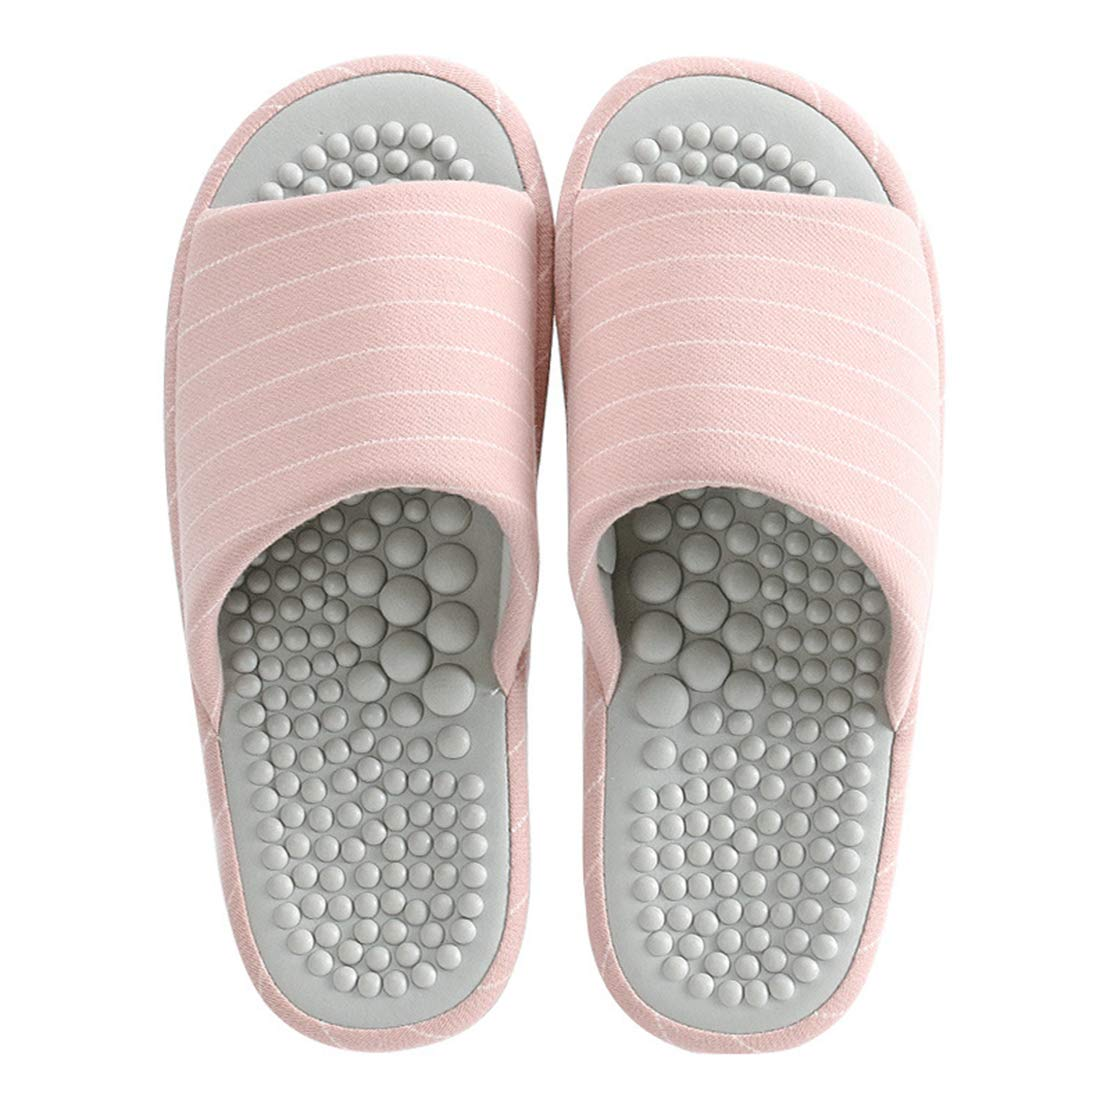 923f4fc337469 Unisex Home Foot Massage Acupressure Slippers Couple Non-Slip Sole Massage  Foot Slipper Cotton House Sandals Indoor Casual Open Toe Shoes for Women ...